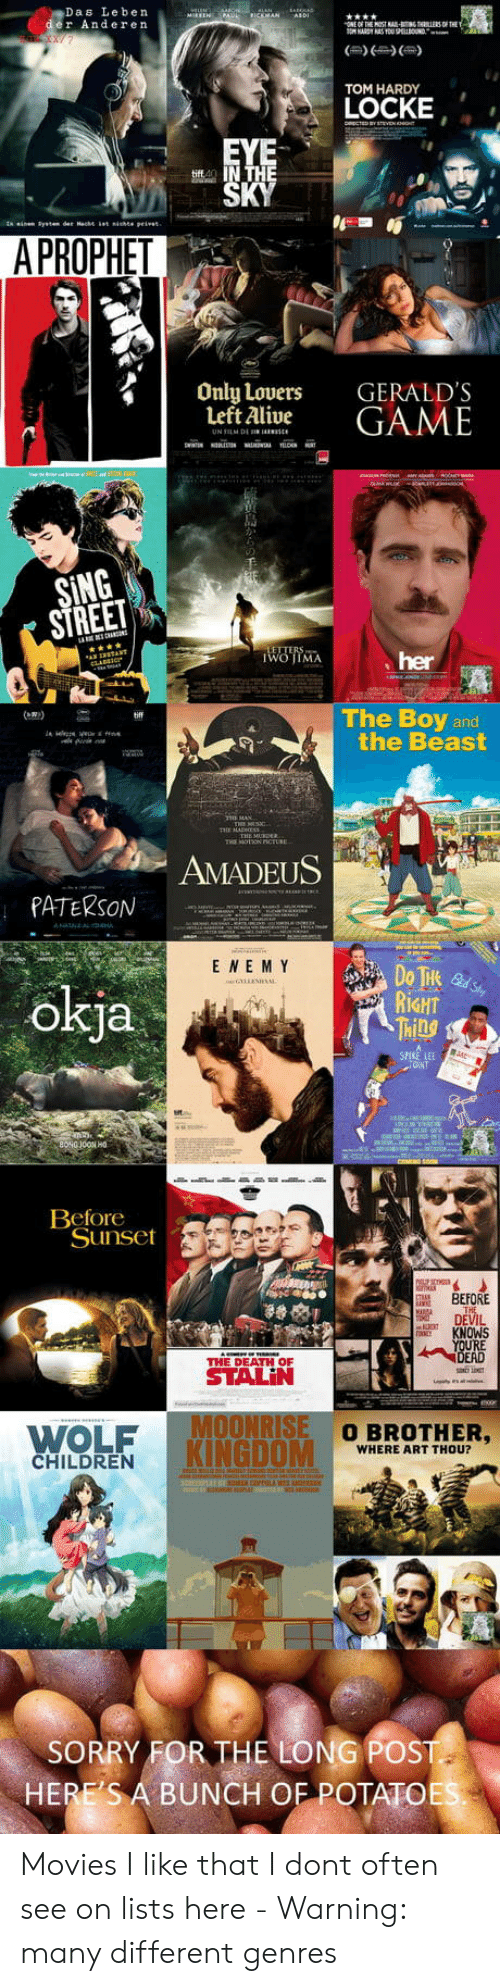 movies i like: Das Leben  er Anderen  TOM HARDY  LOCKE  A PROPHET  Only Lovers  Left Alive  GERALD'S  GAME  SING  STREE  her  The Boy and  the Beast  AMADEUS  PATERSON  E NE M Y  okja  RİGHT  Ml  CANT  Beforeot  Sunset  BEFORE  DEVIL  KNOWS  RE  THE DEATH OF  WOLF  KINGDOM  O BROTHER,  WHERE ART THOU?  CHILDREN  SORRY FOR THE LONG POST  HERE'S A BUNCH OF POTATOE Movies I like that I dont often see on lists here - Warning: many different genres